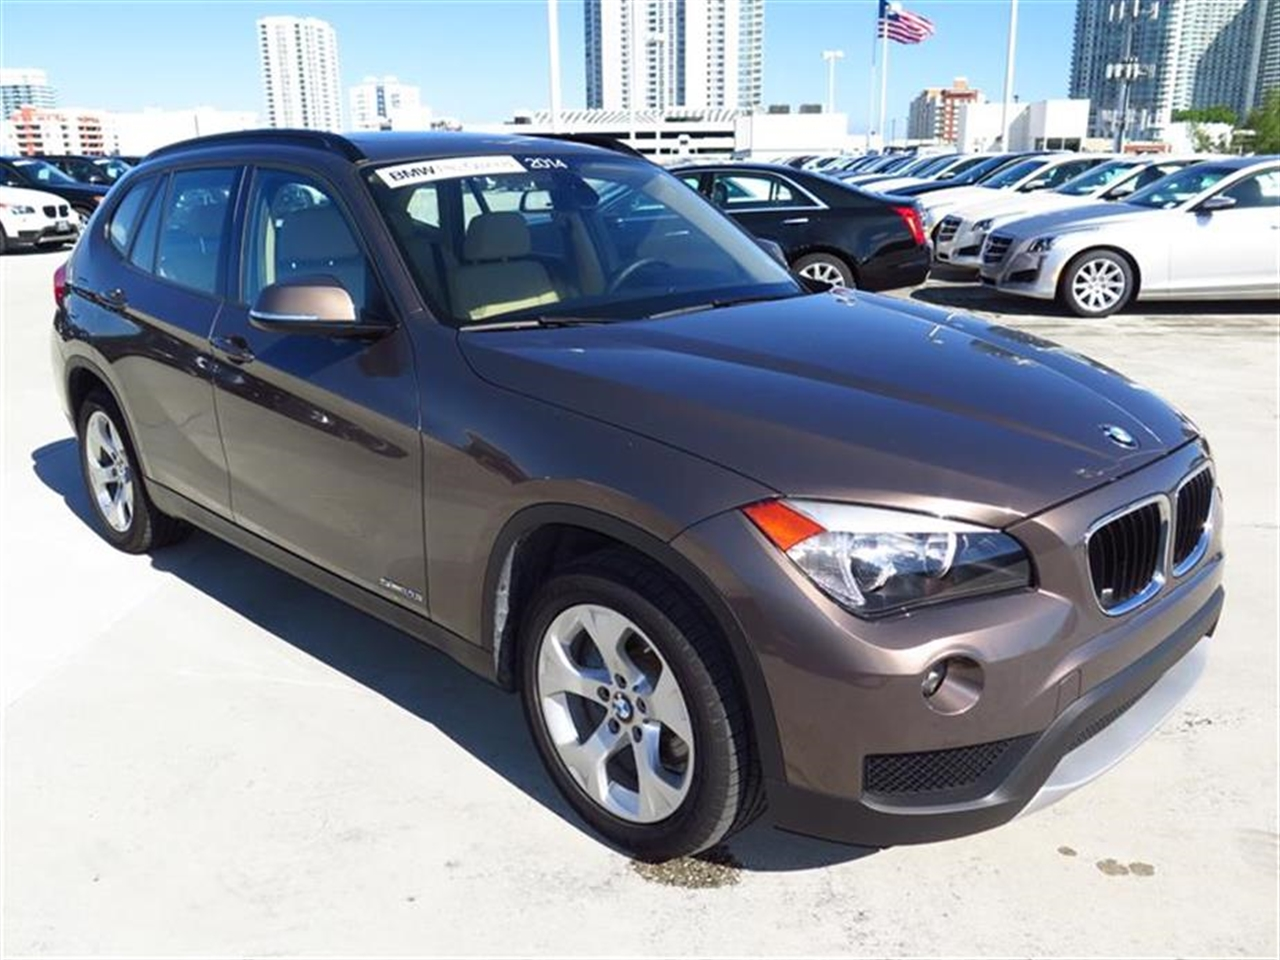 2014 BMW X1 RWD 4dr sDrive28i 12213 miles 2 Seatback Storage Pockets 3 12V DC Power Outlets LEAT